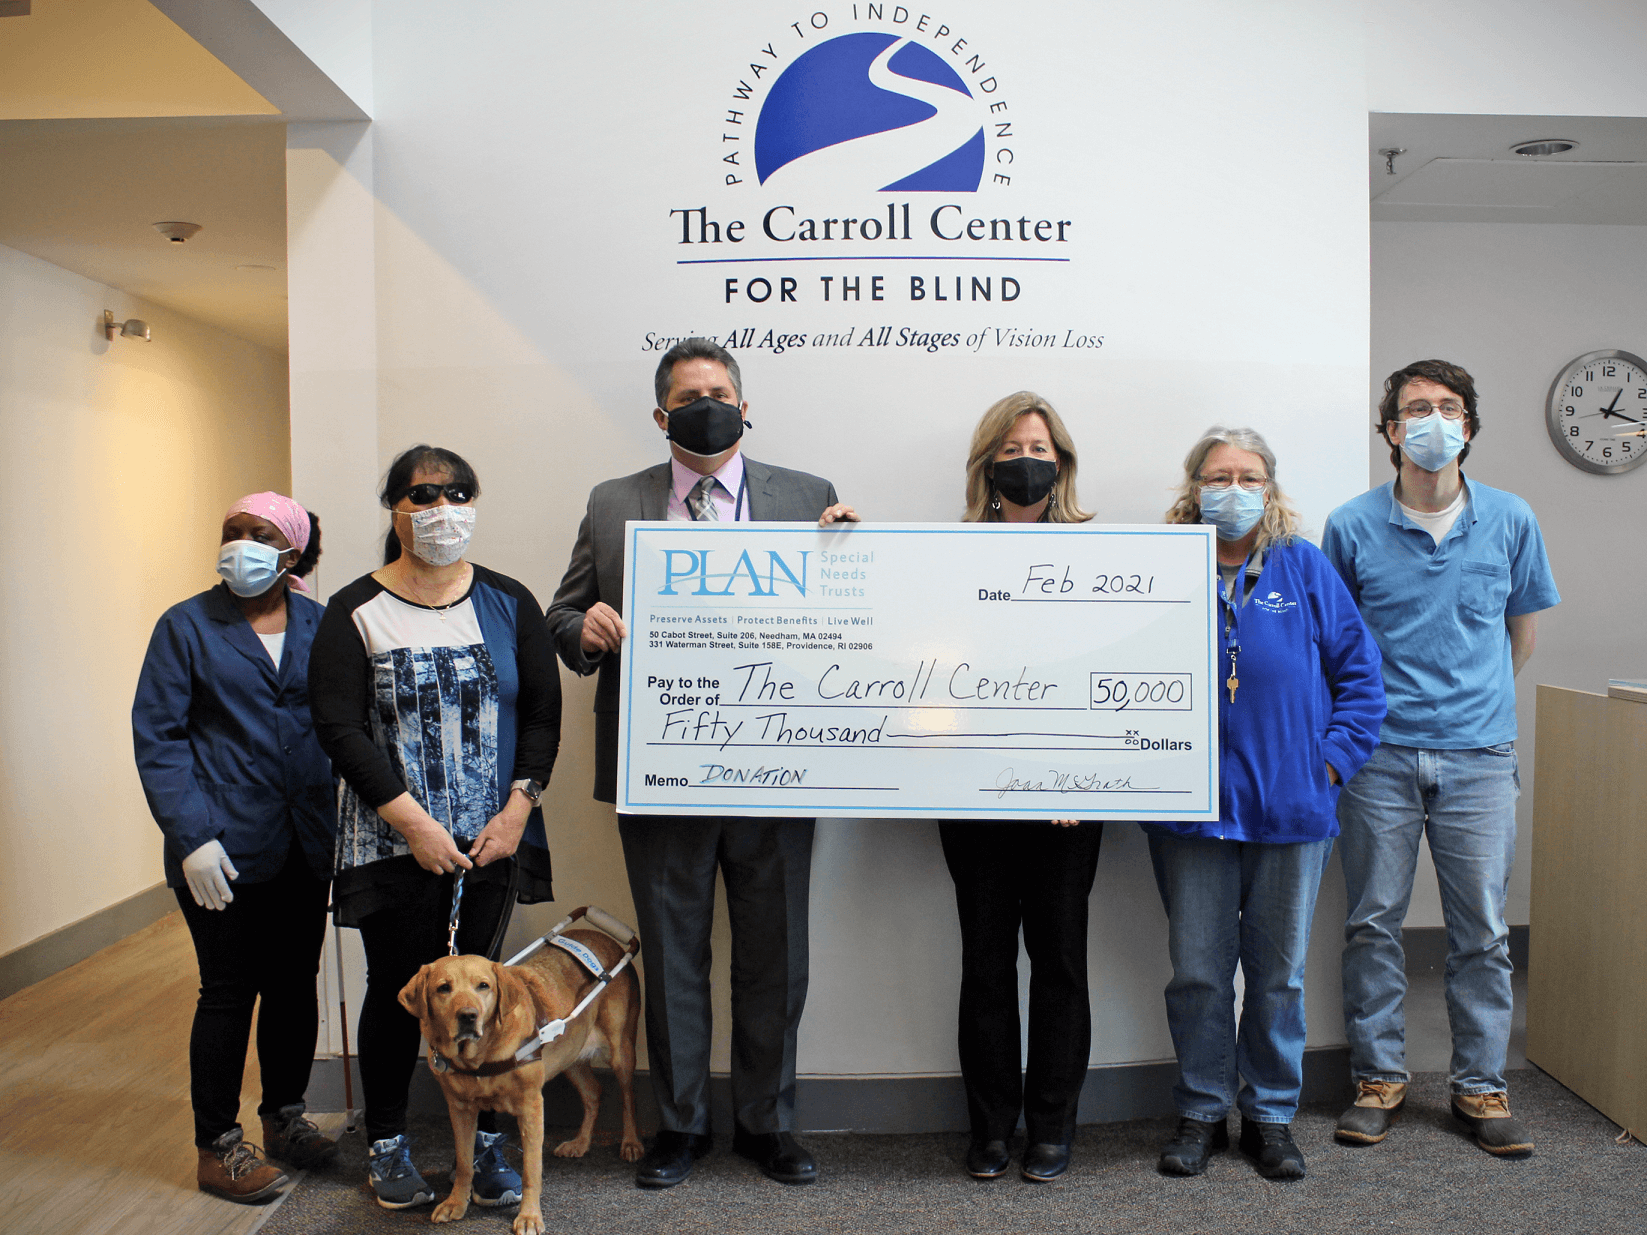 In the lobby of the Carroll Center for the Blind, Joan McGrath, executive director of PLAN of MA & RI presents Greg Donnelly, President & CEO of the Carroll Center for the Blind with a giant cardboard check.